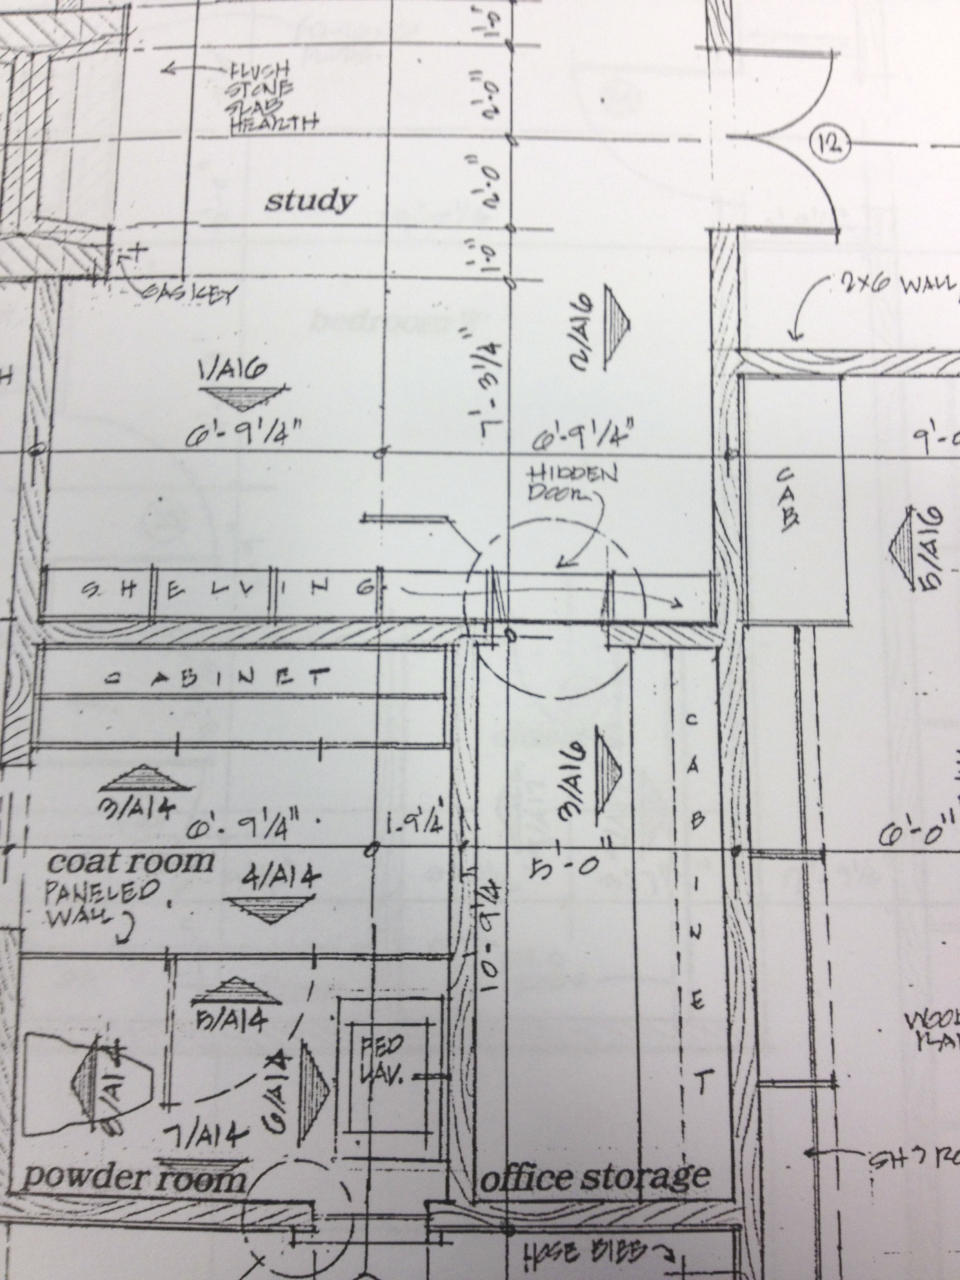 This undated photo provided by Matt Canham shows a drawing of Mitt Romney's soon-to-be constructed home in Holladay, Utah. Romney's study features a book case that swivels open and leads into secret room, The Salt Lake Tribune reports, based on records it obtained. (AP Photo/Matt Canham)